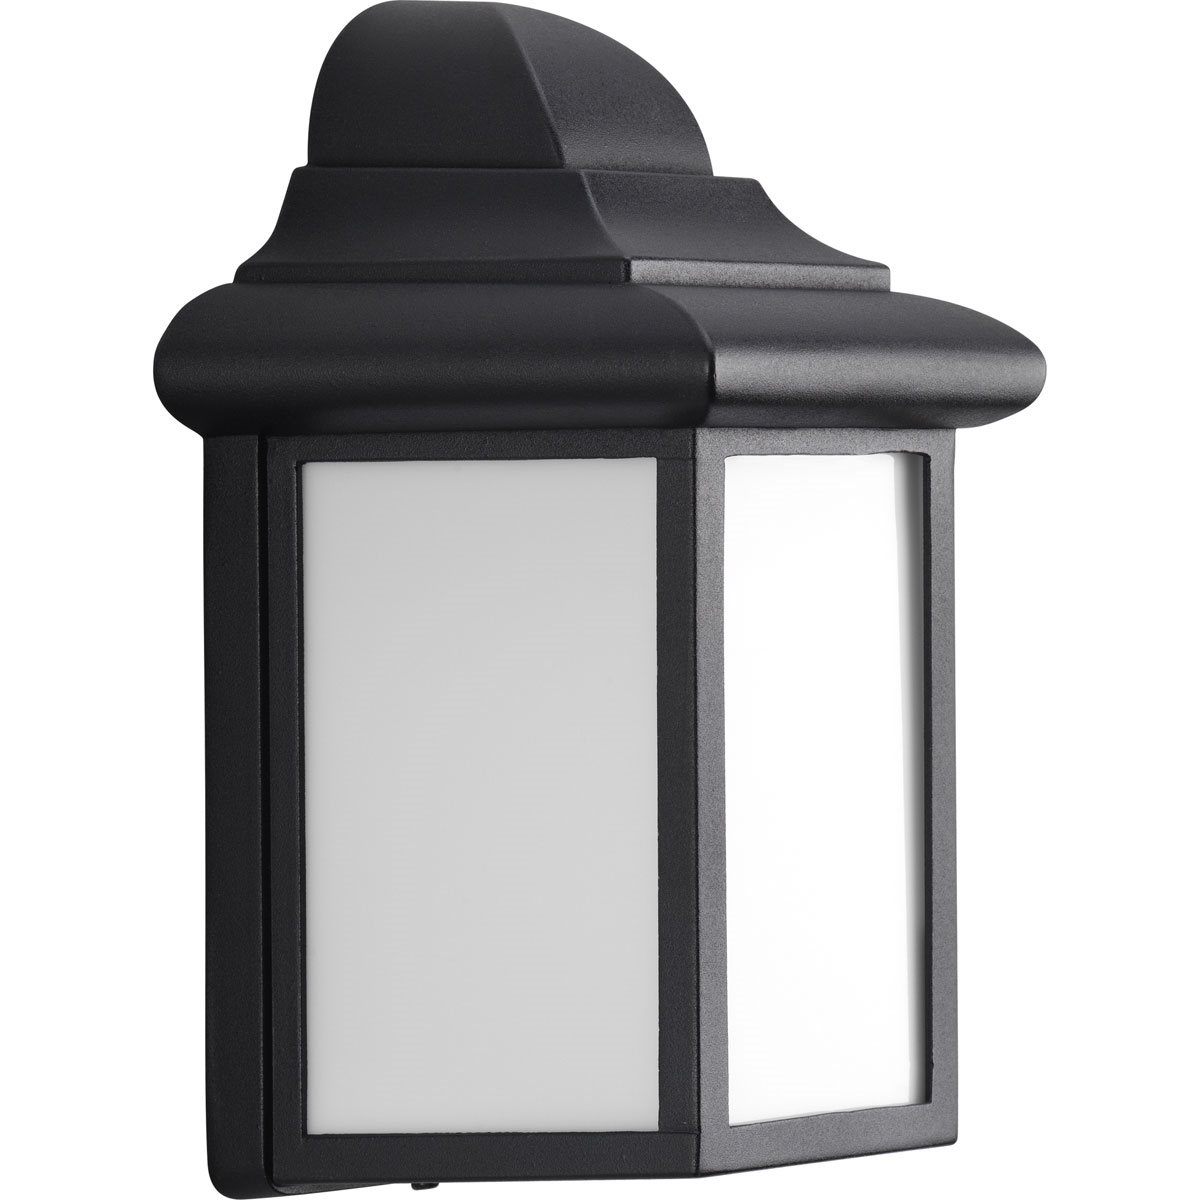 Efficient Lighting Interior Wall Sconce Lighting Fixture With Built In Switch : Progress Lighting P5821-31 Milford CFL Milford Energy Efficient Transitional Outdoor Wall Sconce ...